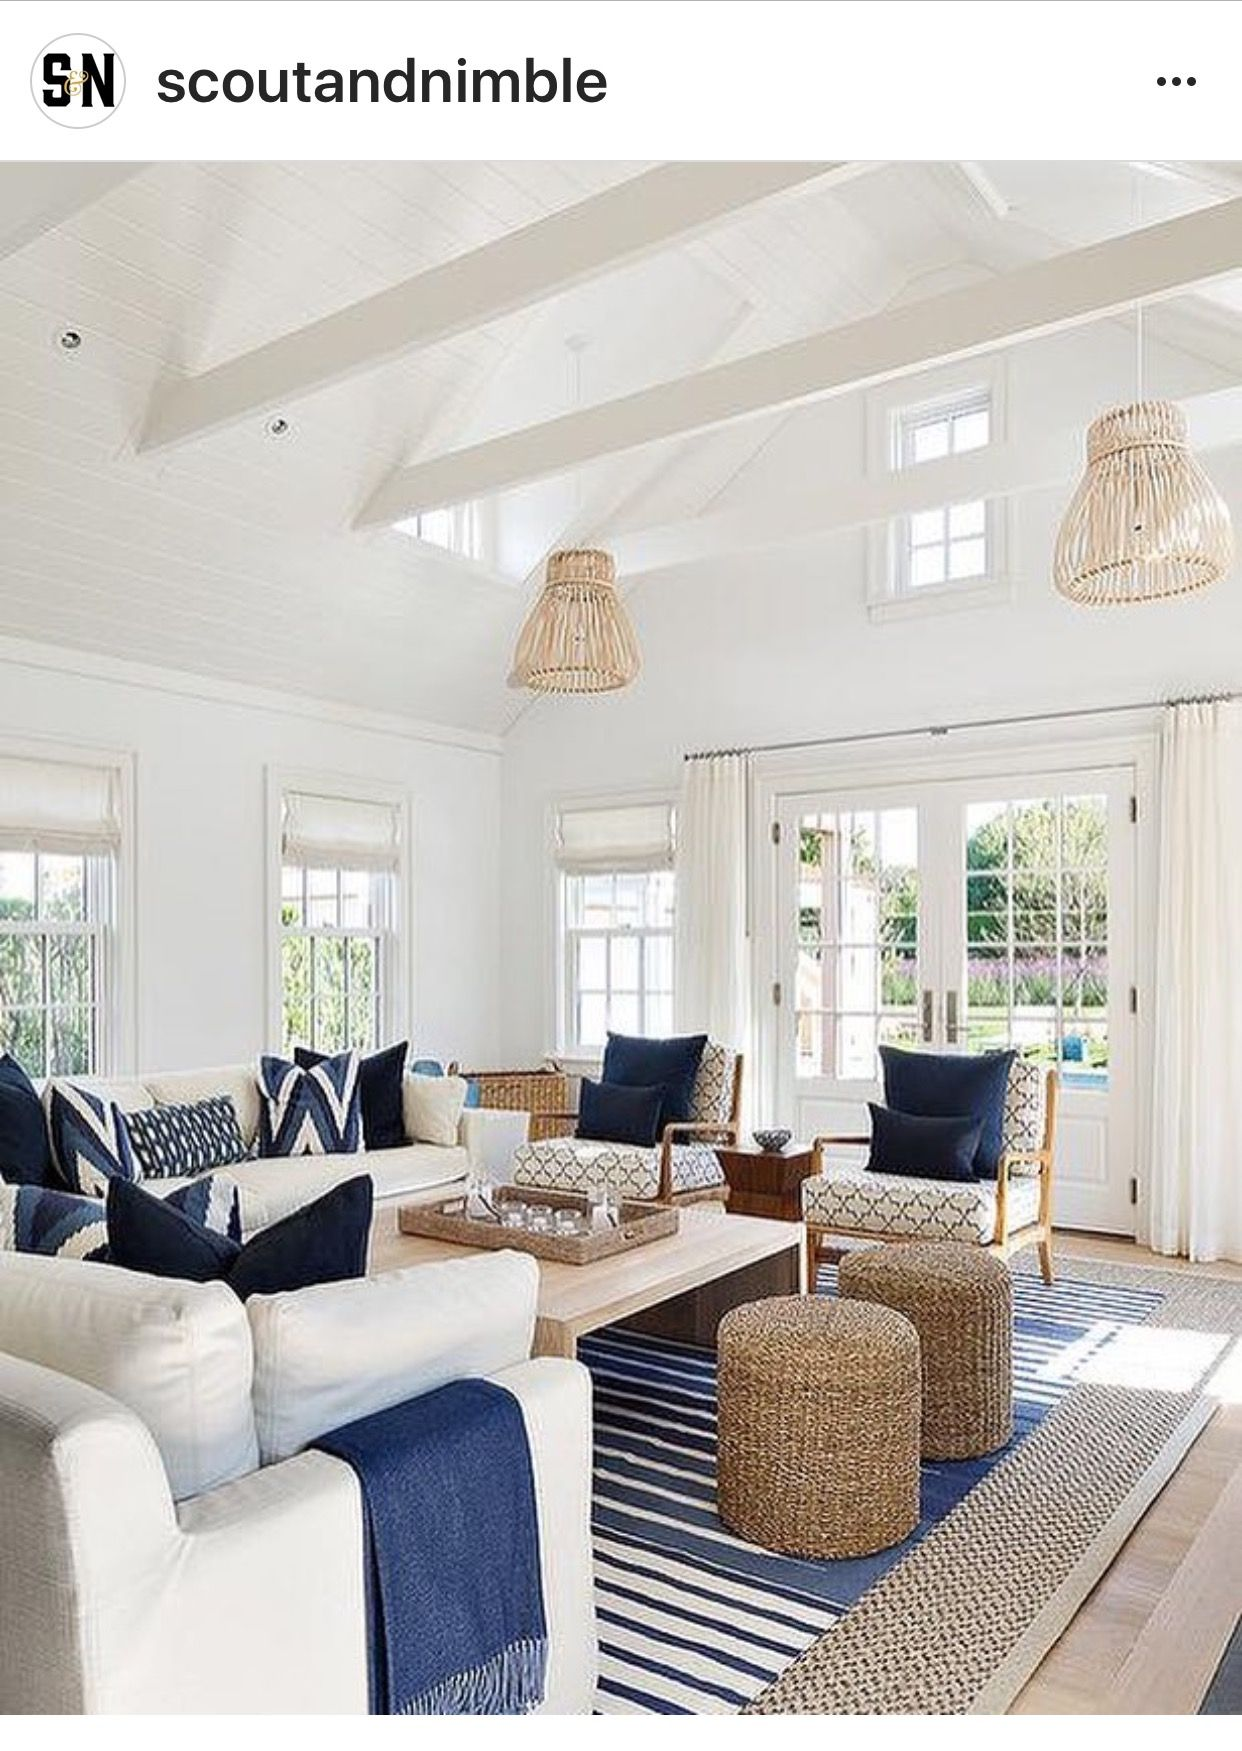 Light And Bright Coastal Interior With A Relaxed Feel | Coastal Home Décor  | Coastal Interiors | Nautical Interiors | Nautical Home Décor | Beach House